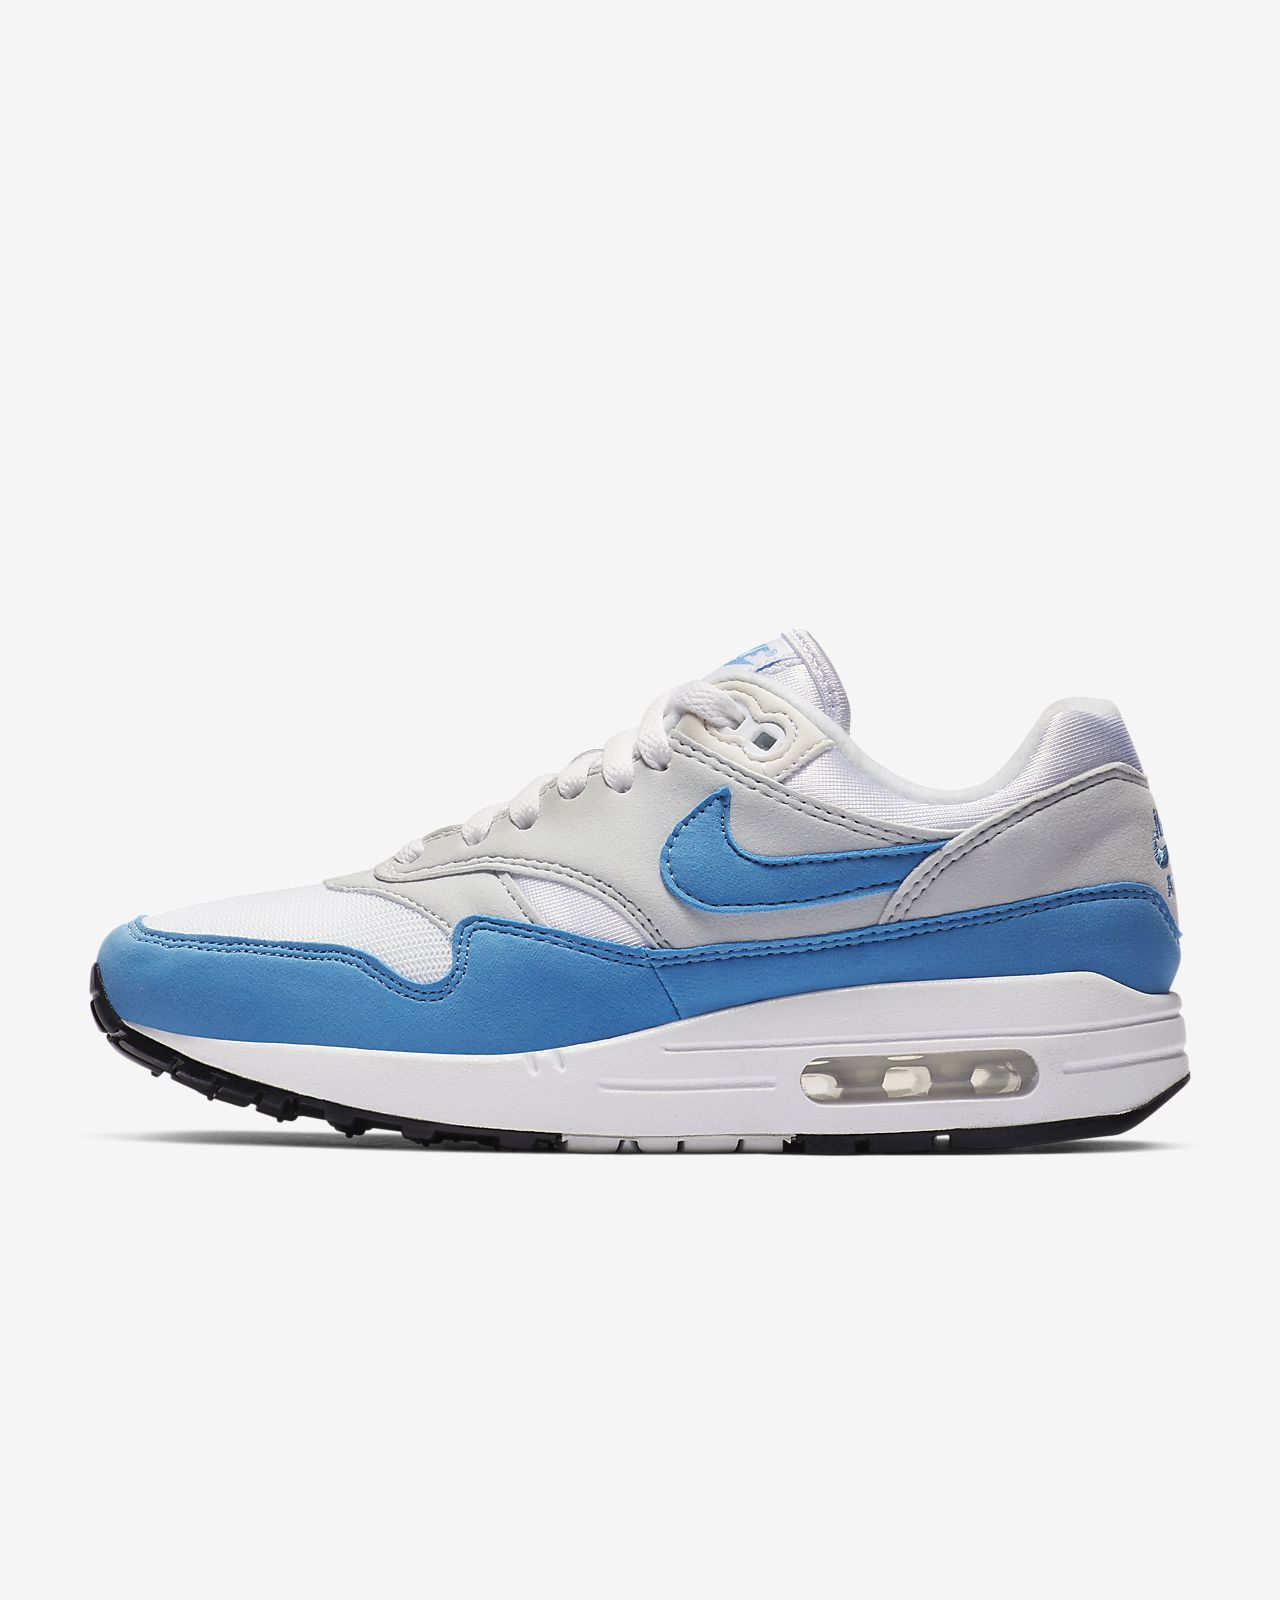 on sale a483f 89a78 ... Chaussure Nike Air Max 1 Essential pour Femme